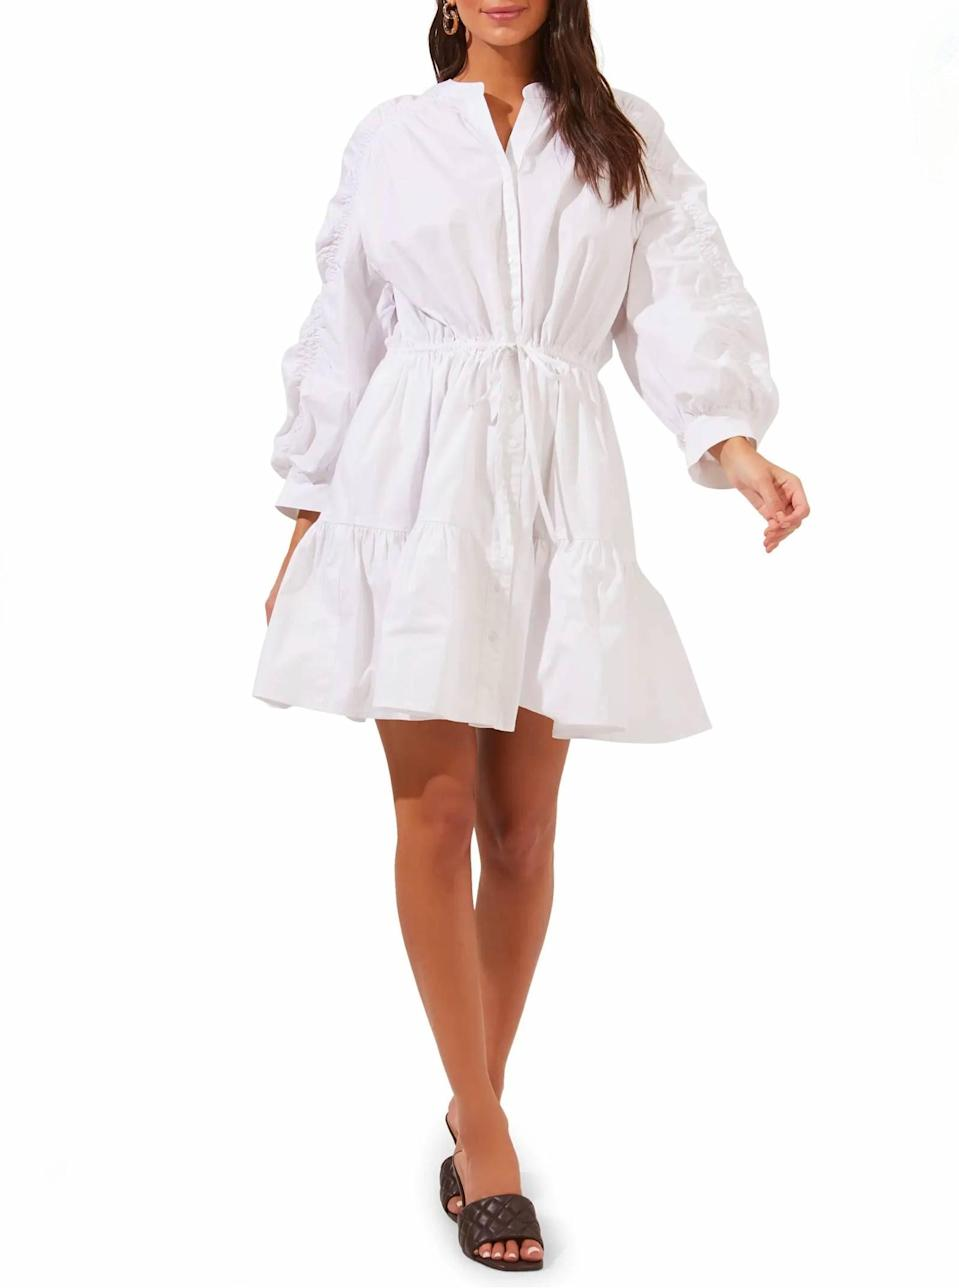 """Don't forget about the little <em>white</em> dress. This floaty option is perfect or brunch and <a href=""""https://www.glamour.com/story/picnic-essentials?mbid=synd_yahoo_rss"""" rel=""""nofollow noopener"""" target=""""_blank"""" data-ylk=""""slk:picnics"""" class=""""link rapid-noclick-resp"""">picnics</a> alike. $54, Nordstrom. <a href=""""https://www.nordstrom.com/s/astr-the-label-ruched-shirtdress/5907406"""" rel=""""nofollow noopener"""" target=""""_blank"""" data-ylk=""""slk:Get it now!"""" class=""""link rapid-noclick-resp"""">Get it now!</a>"""